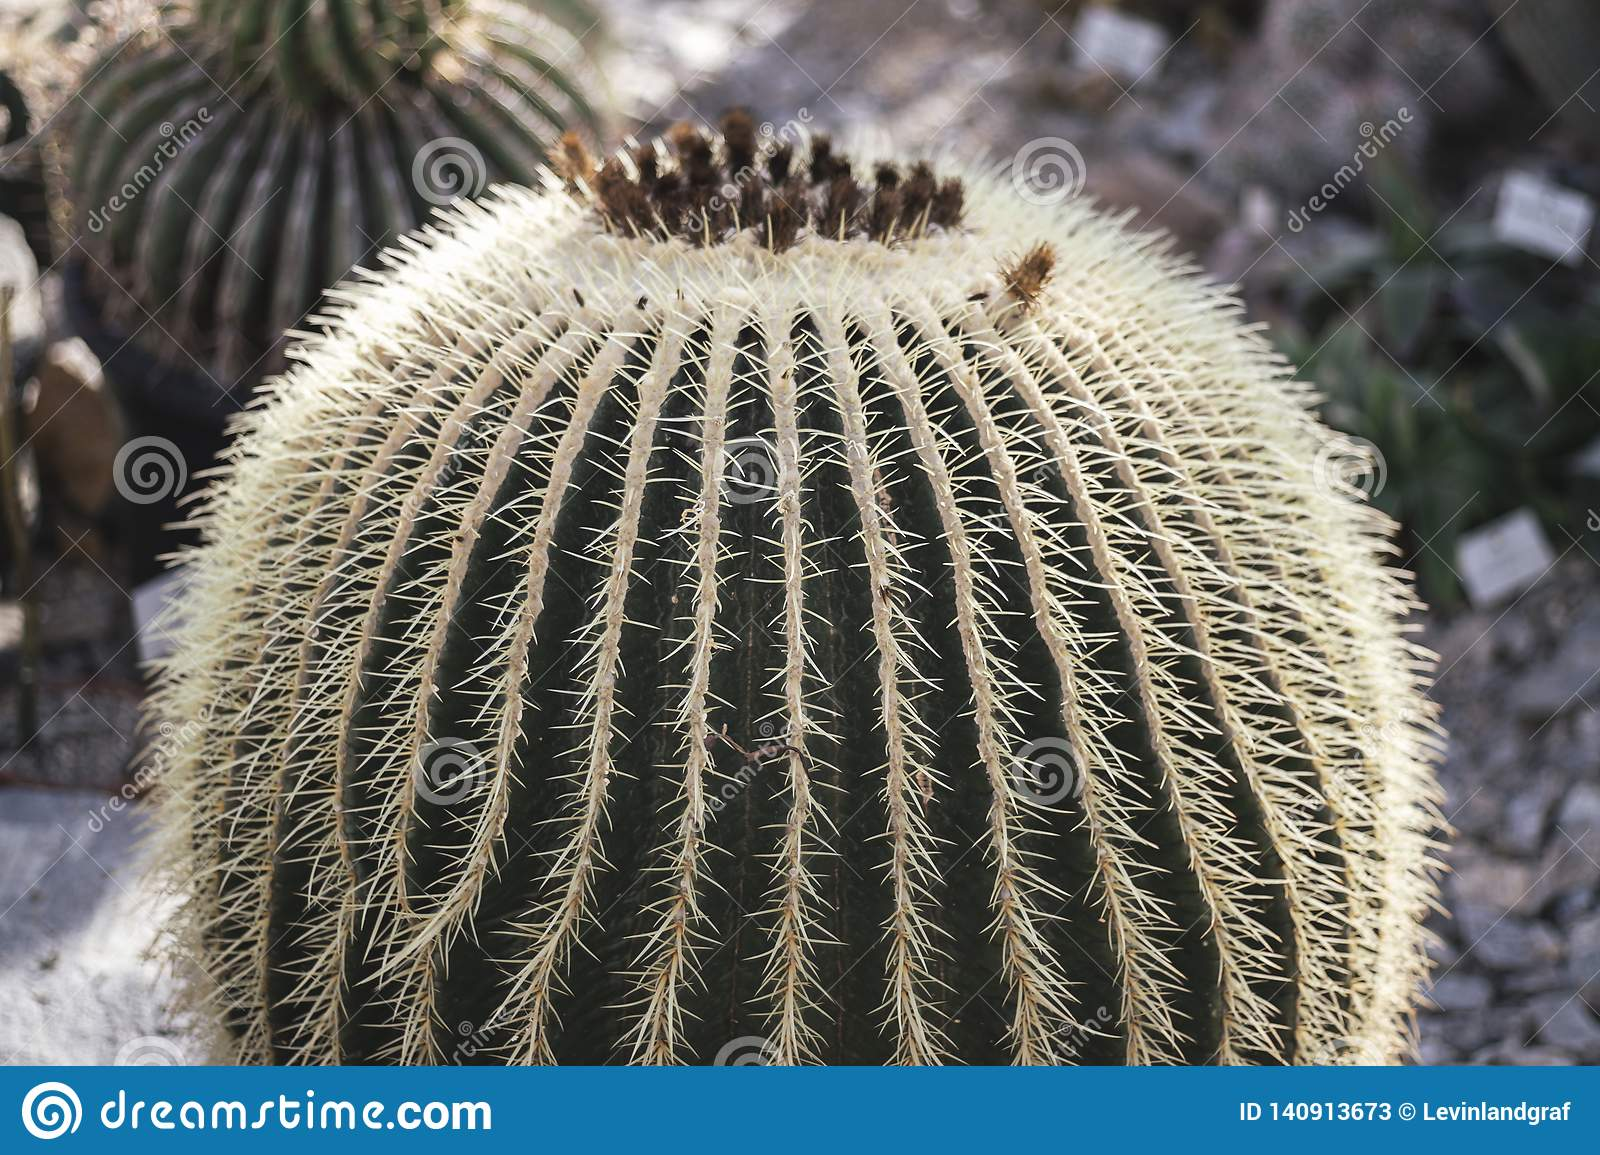 Big round Cactus with lots of thorns